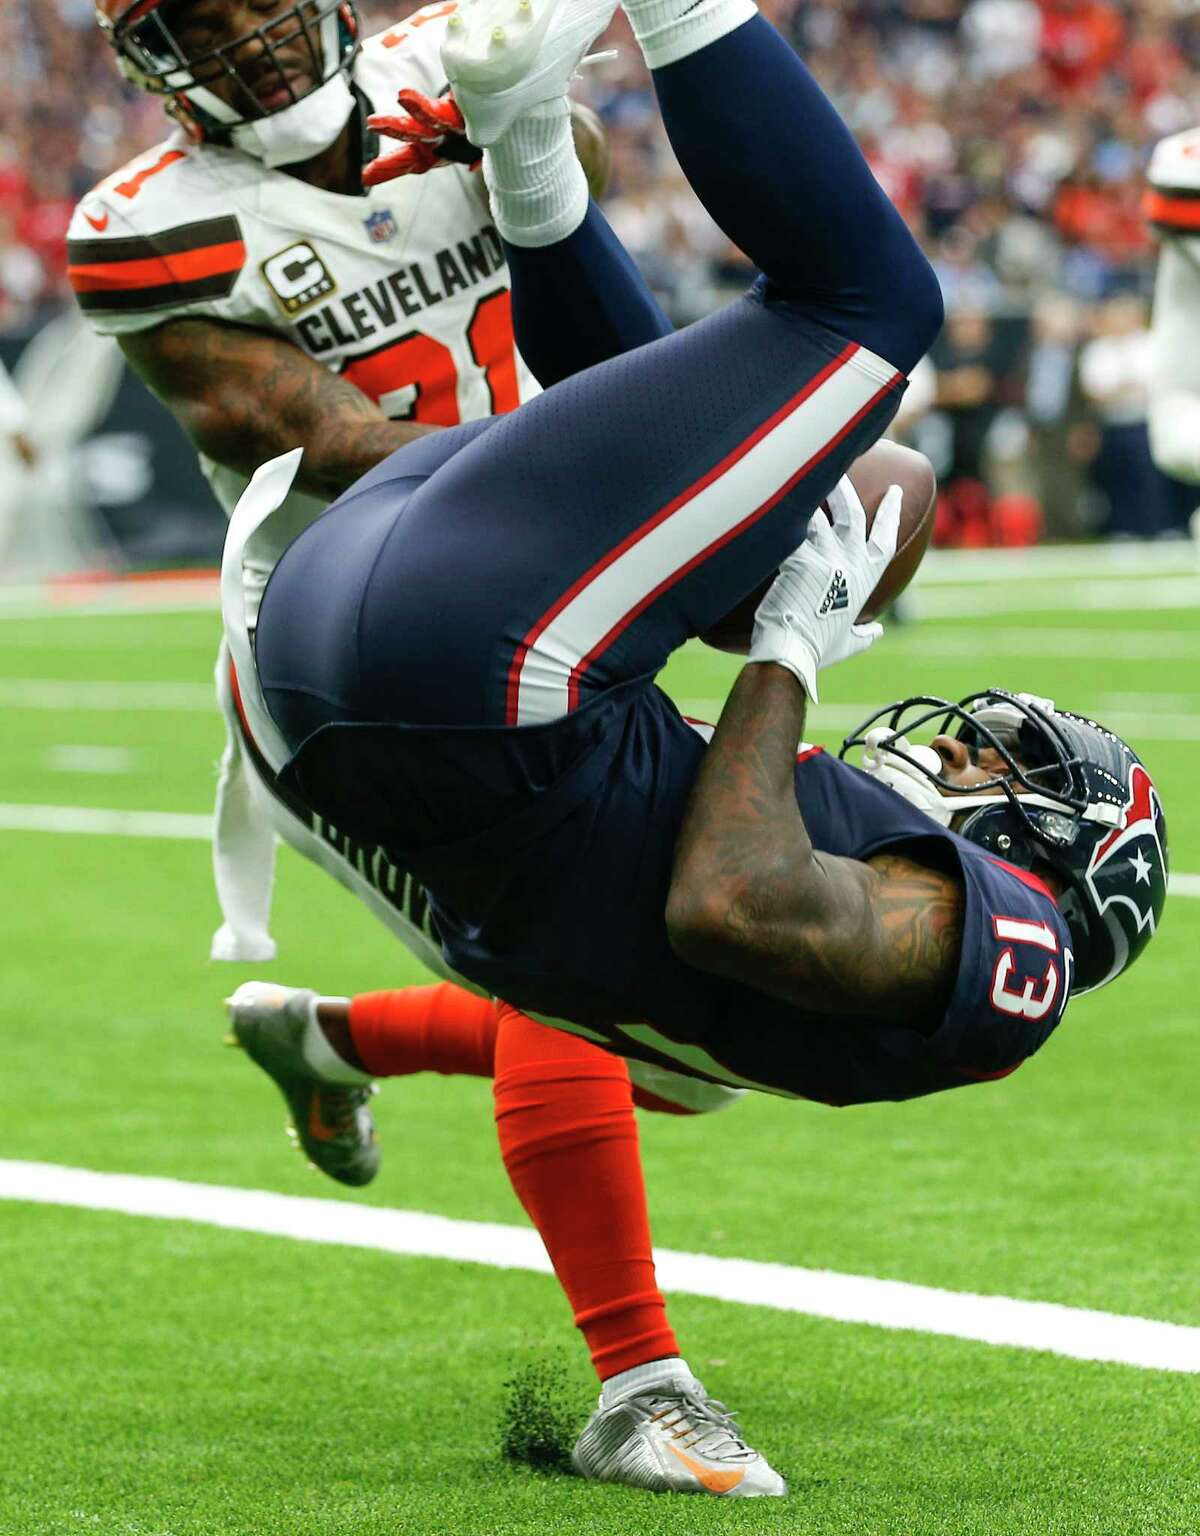 Houston Texans wide receiver Braxton Miller (13) flips into the end zone past Cleveland Browns cornerback Jamar Taylor (21) for a 1-yard touchdown reception during the second quarter of an NFL football game at NRG Stadium on Sunday, Oct. 15, 2017, in Houston.